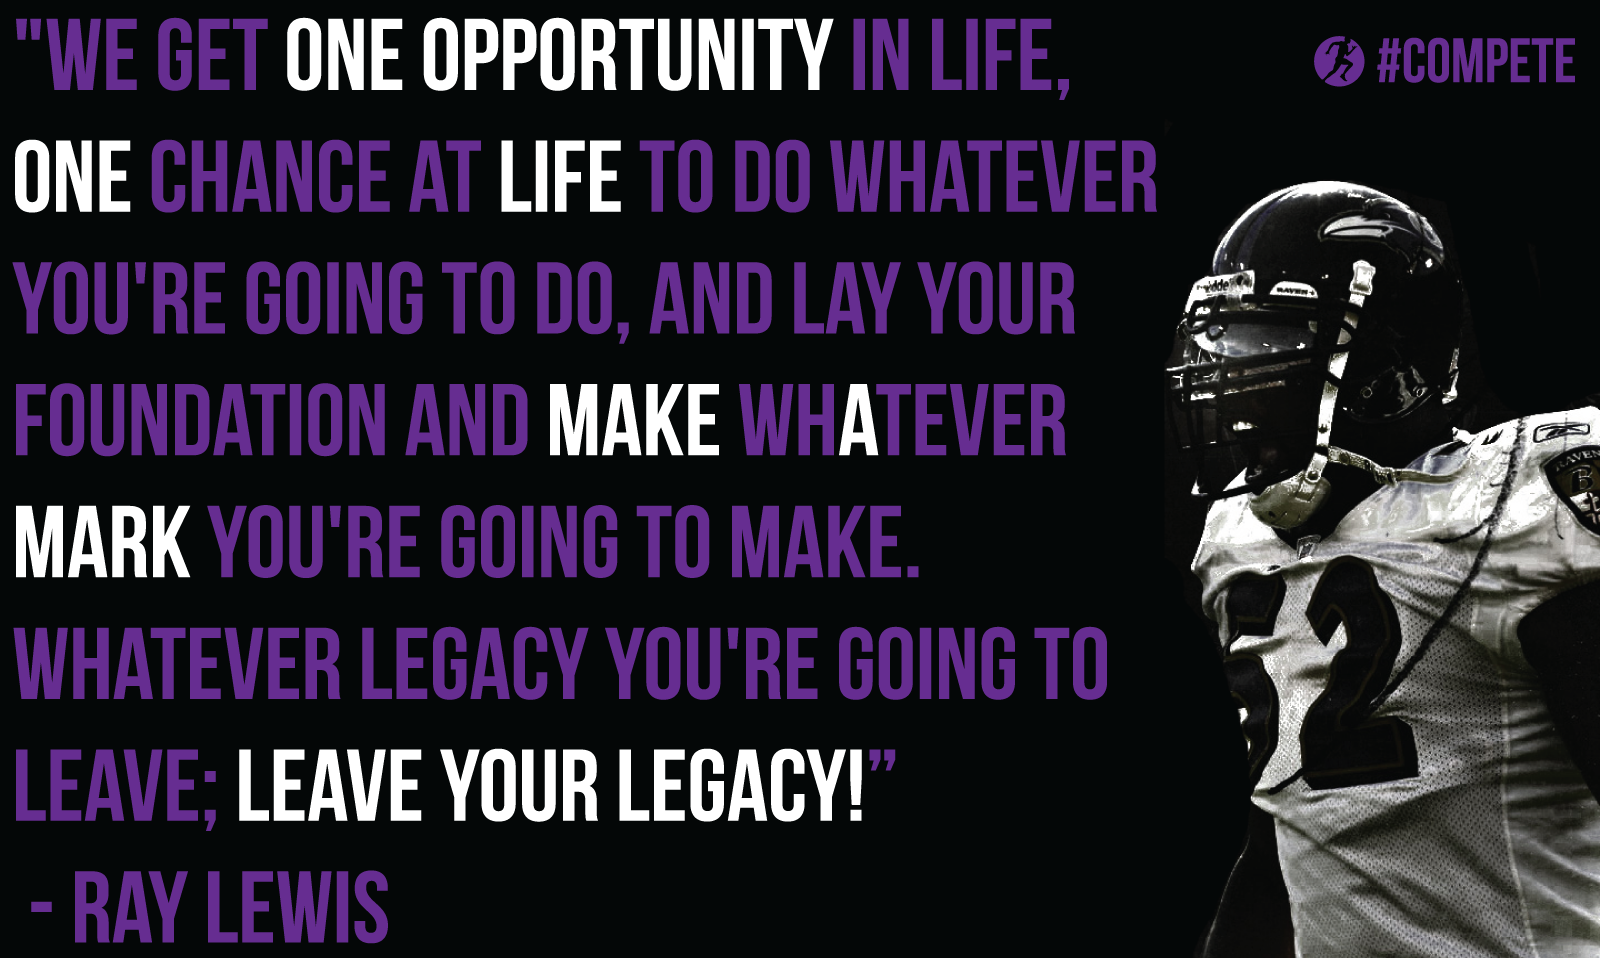 ray-lewis-quote.png